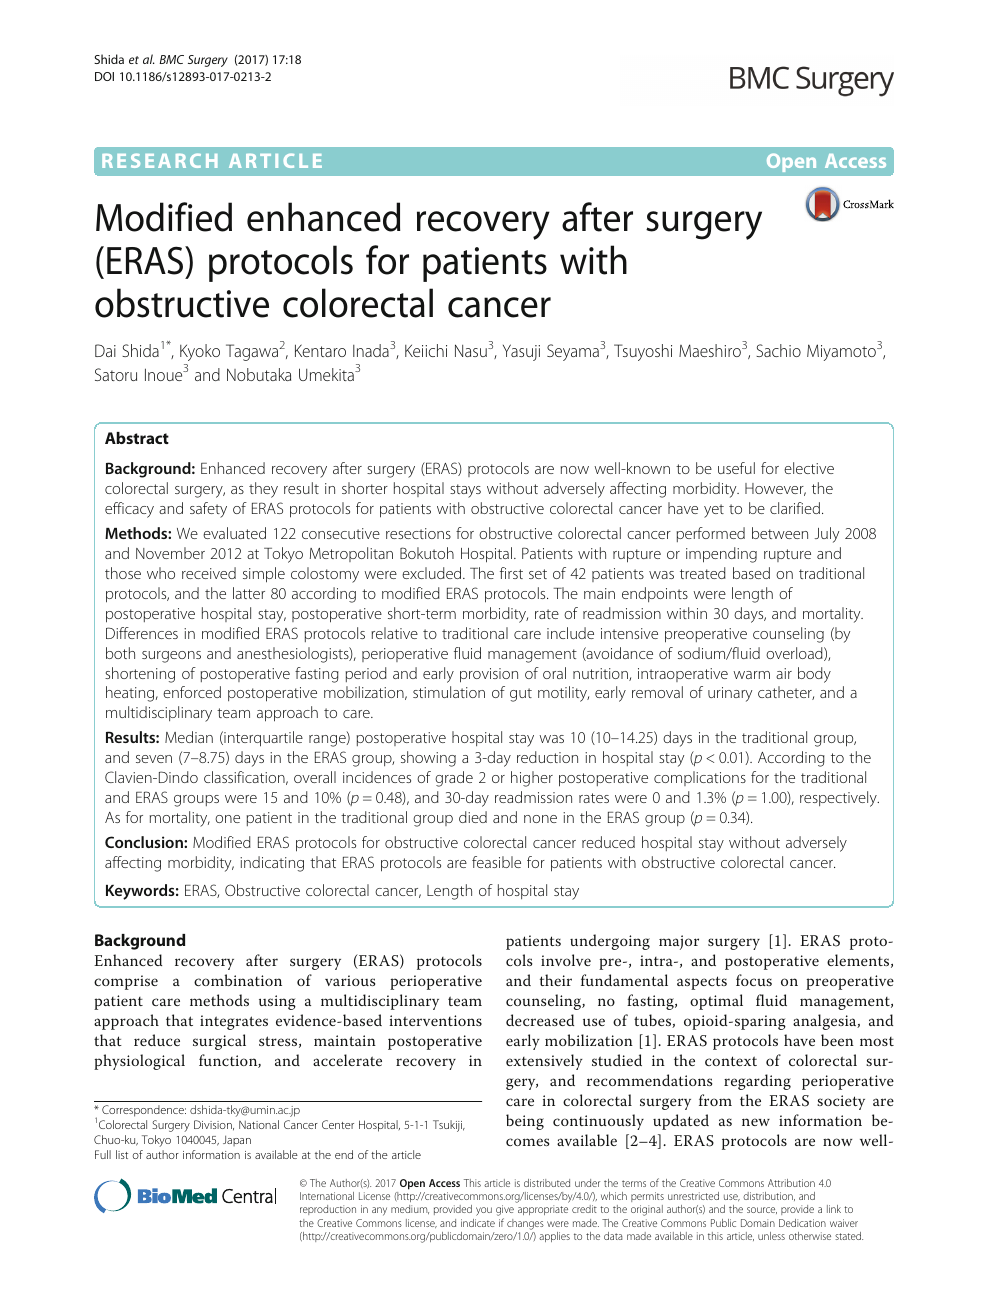 Modified Enhanced Recovery After Surgery Eras Protocols For Patients With Obstructive Colorectal Cancer Topic Of Research Paper In Clinical Medicine Download Scholarly Article Pdf And Read For Free On Cyberleninka Open